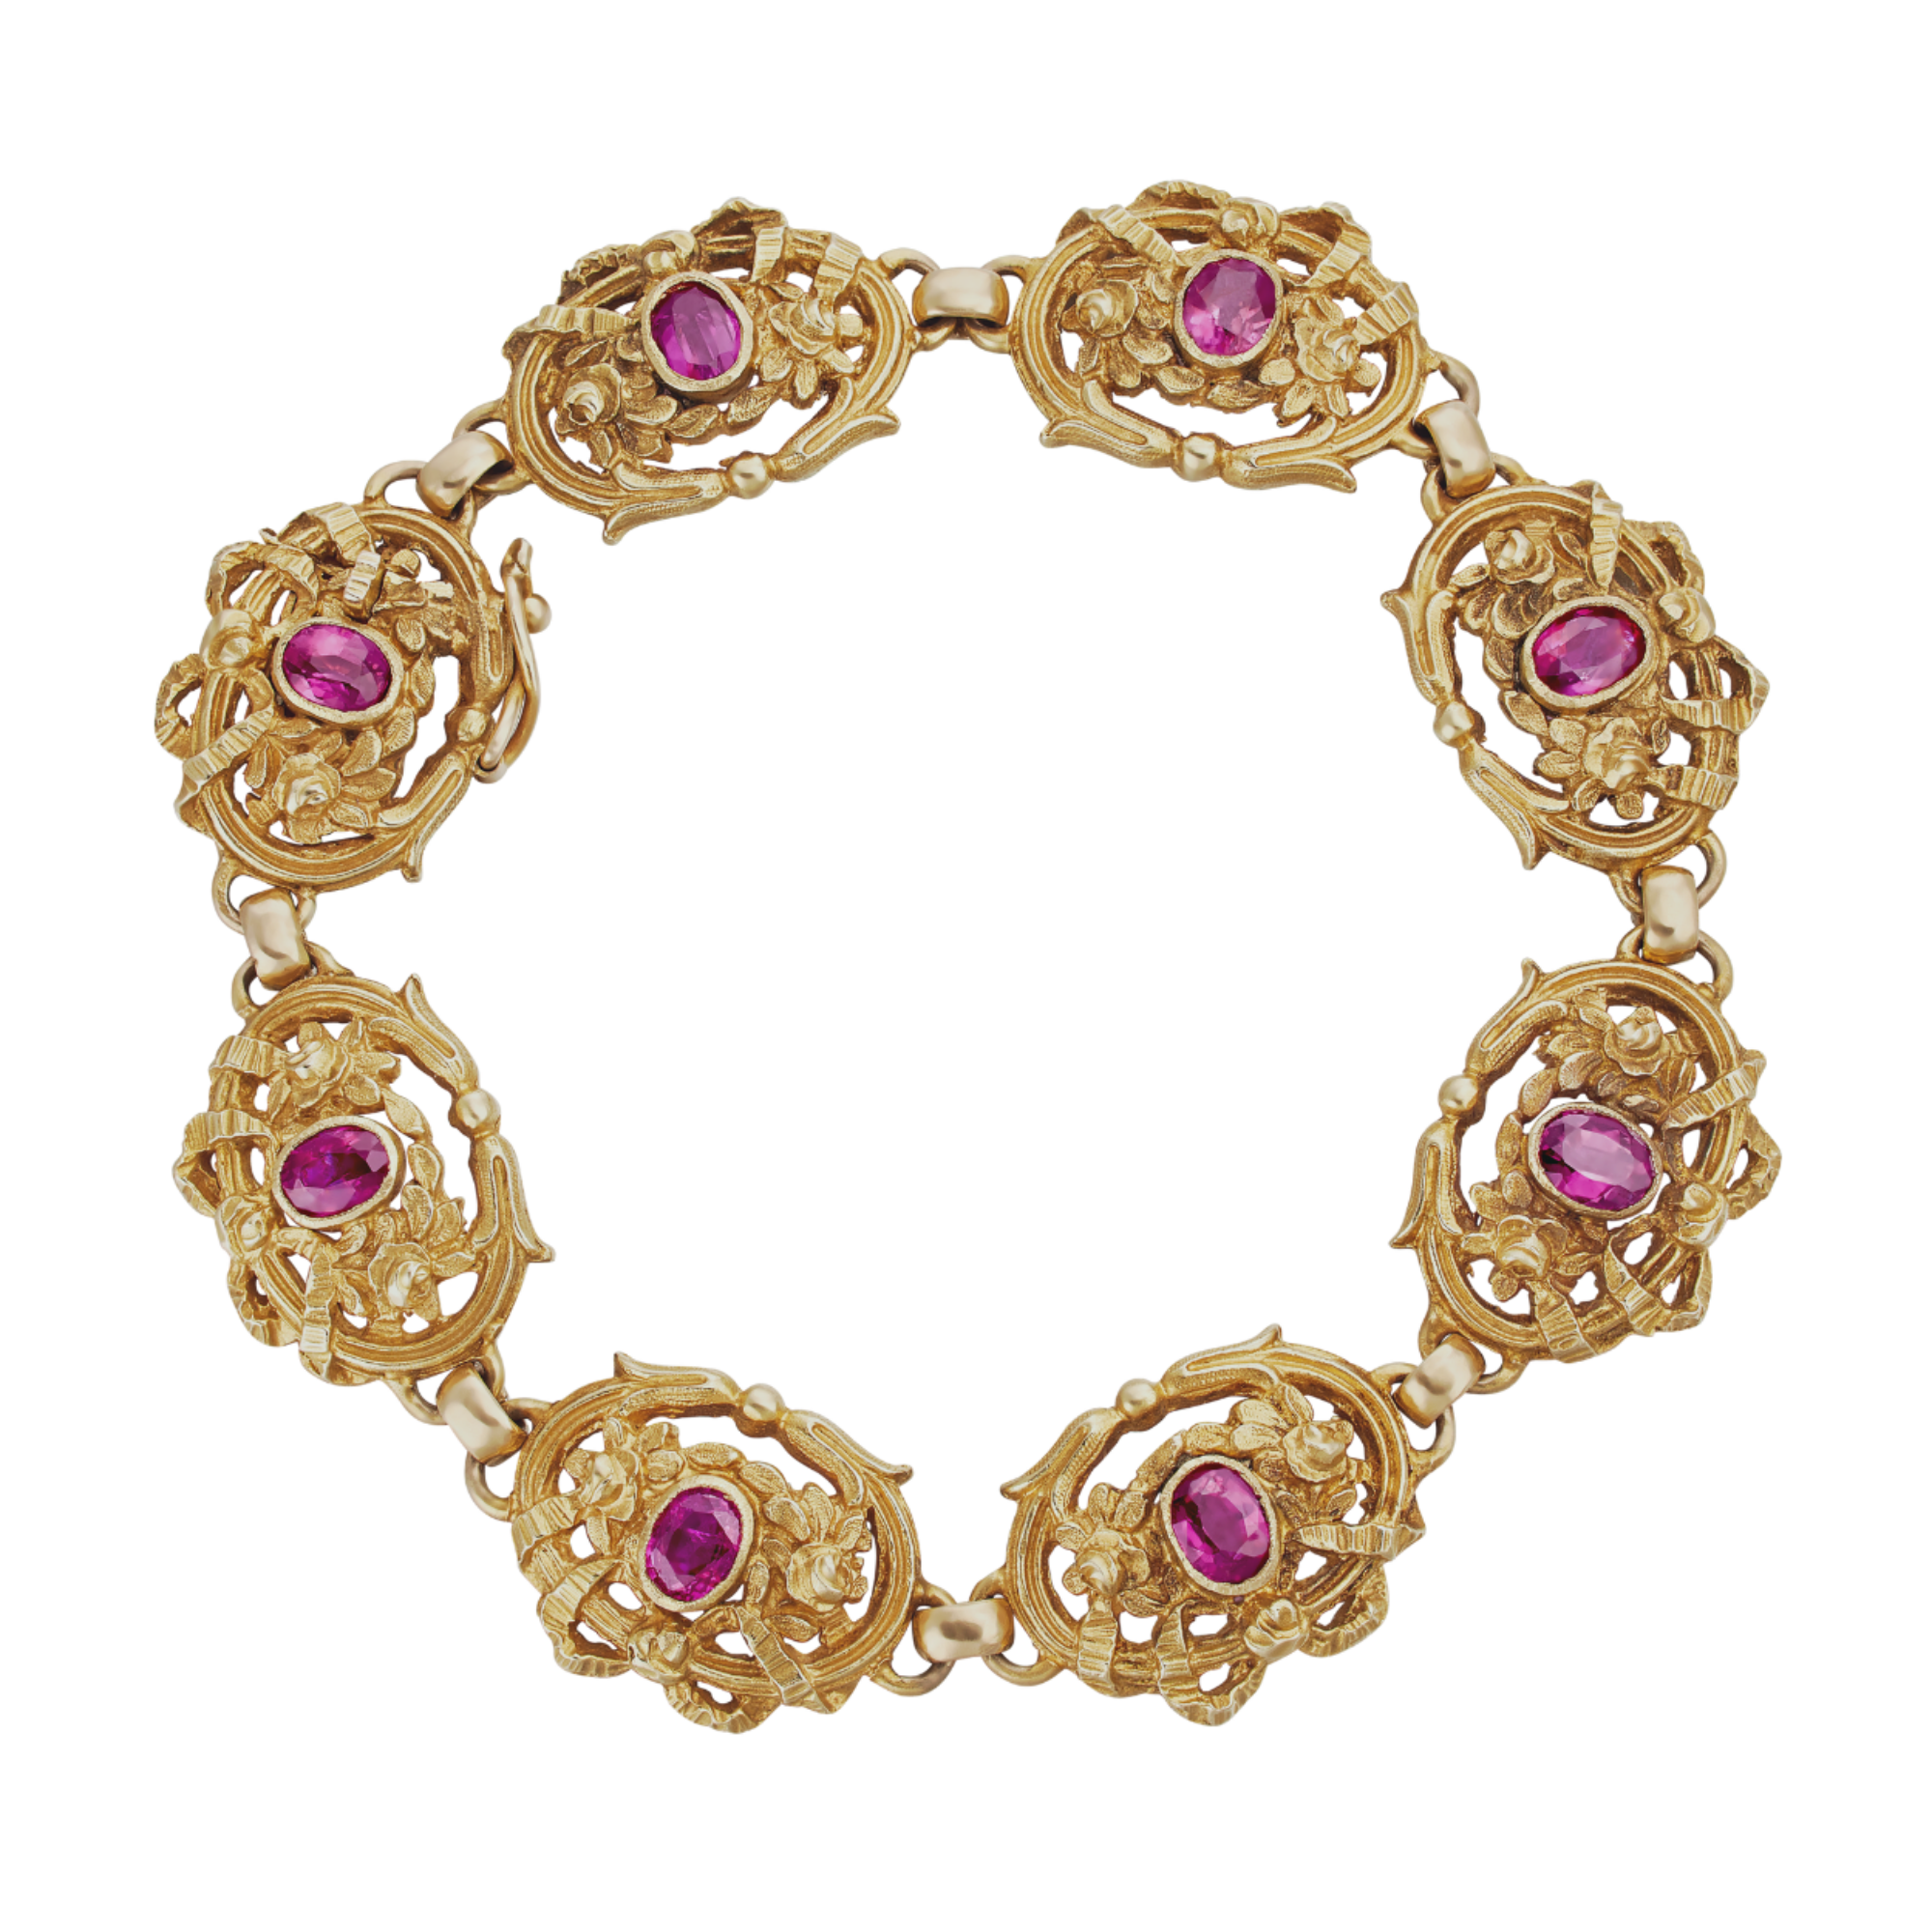 Gold Fancy Link French Bracelet Set With Rubies